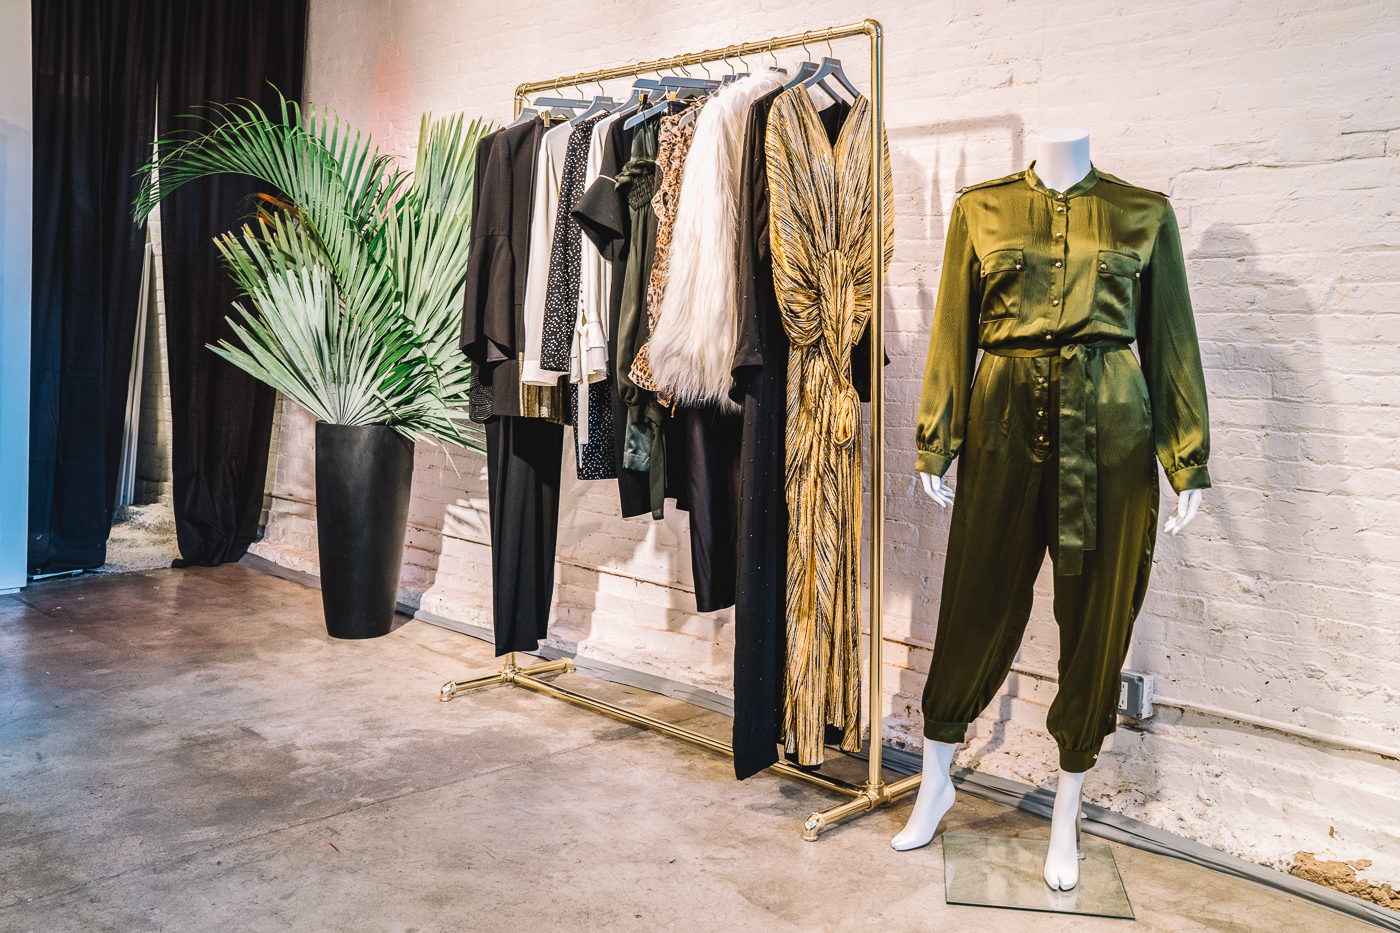 11 Honoré, pop up, how to build a pop up, New York pop up, things to see in New York, short-term retail